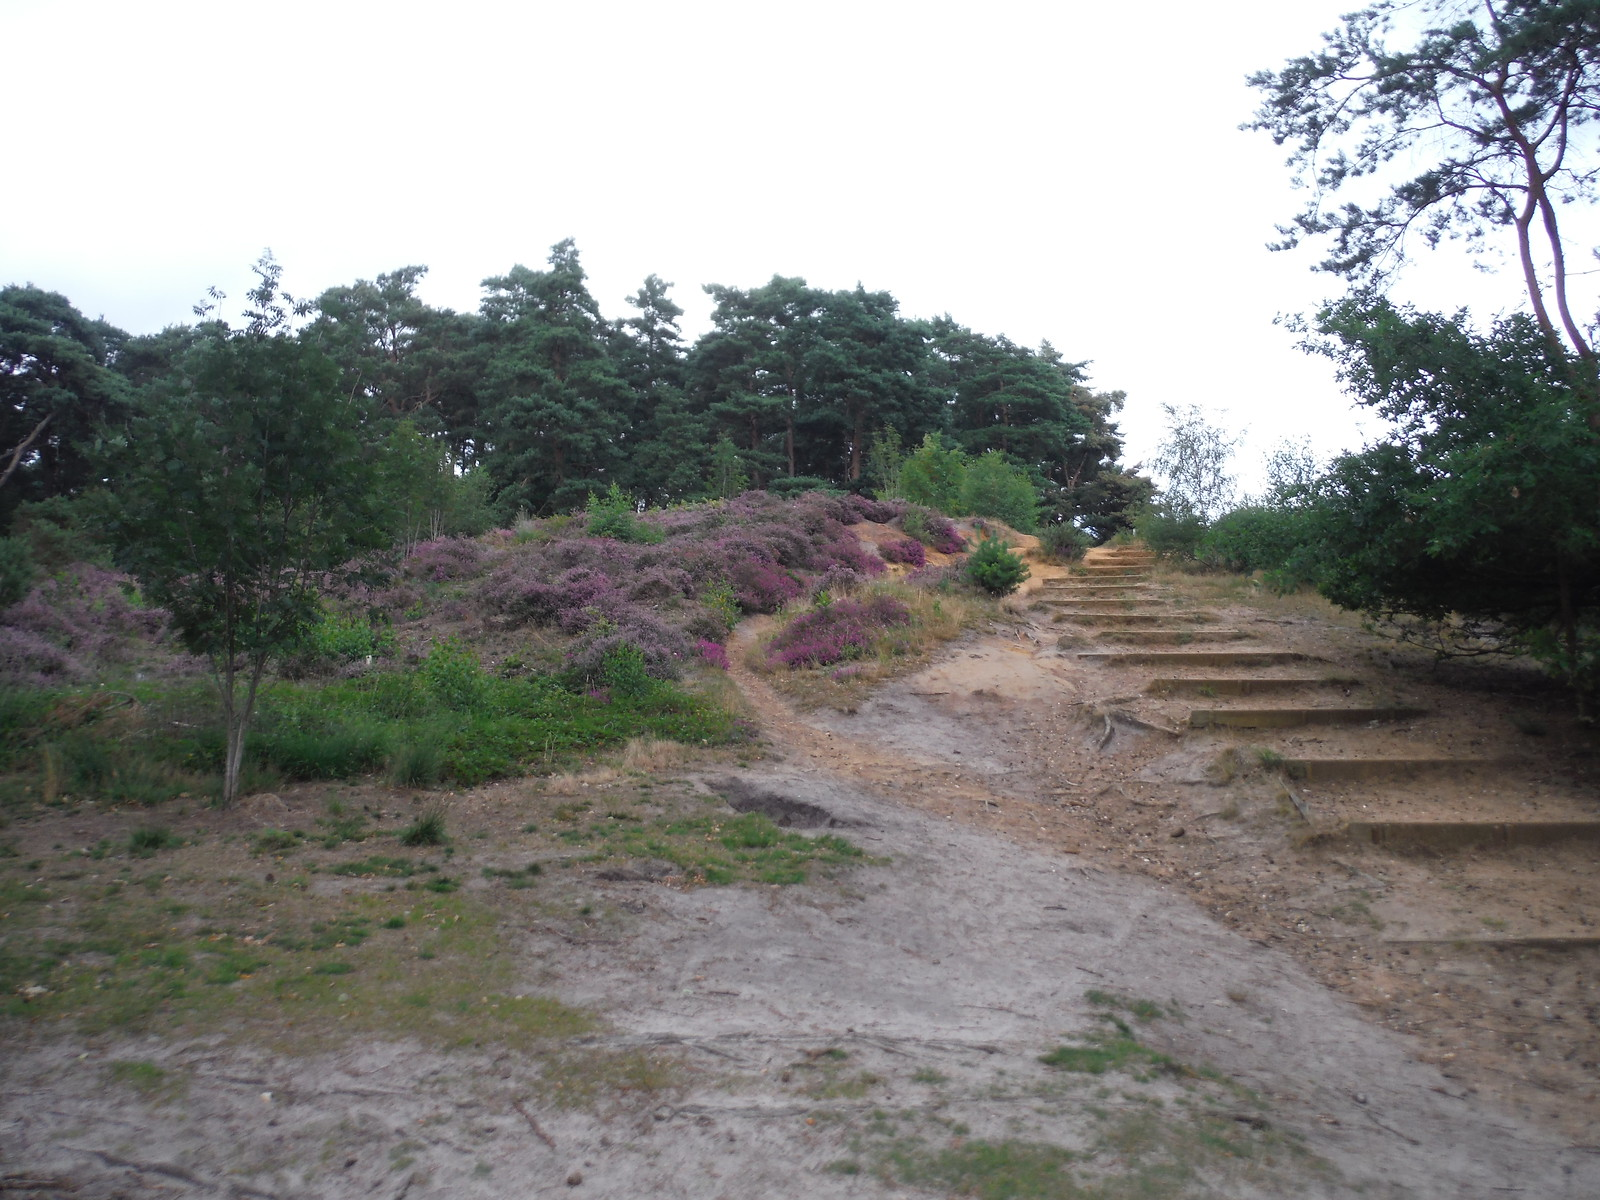 Stepped Path down South Slope, Oxshott Heath SWC Short Walk 17 - Oxshott Heath, Esher and West End Commons